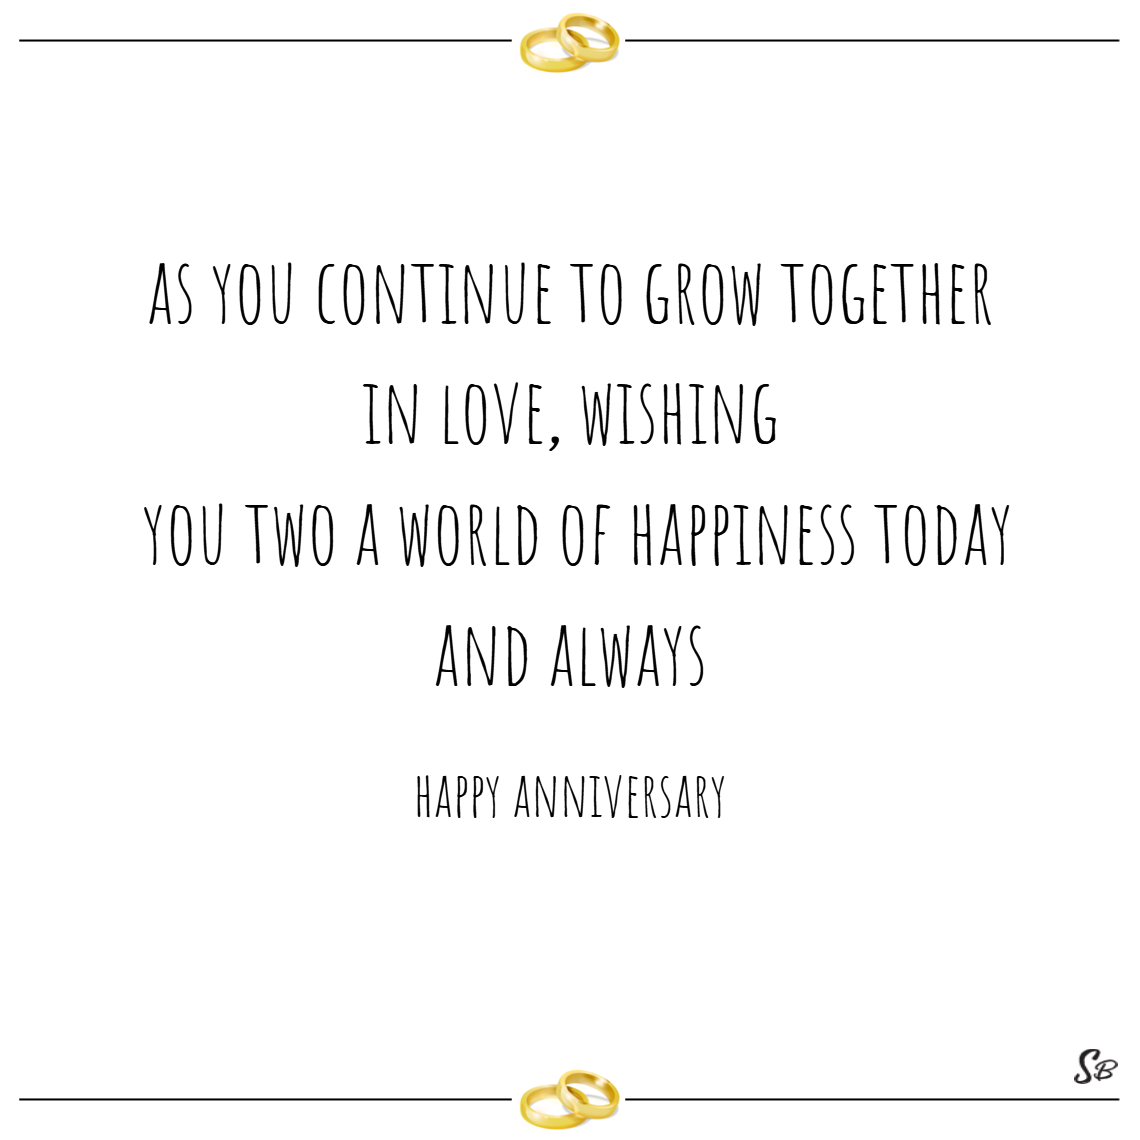 As you continue to grow together in love, wishing you two a world of happiness today and always